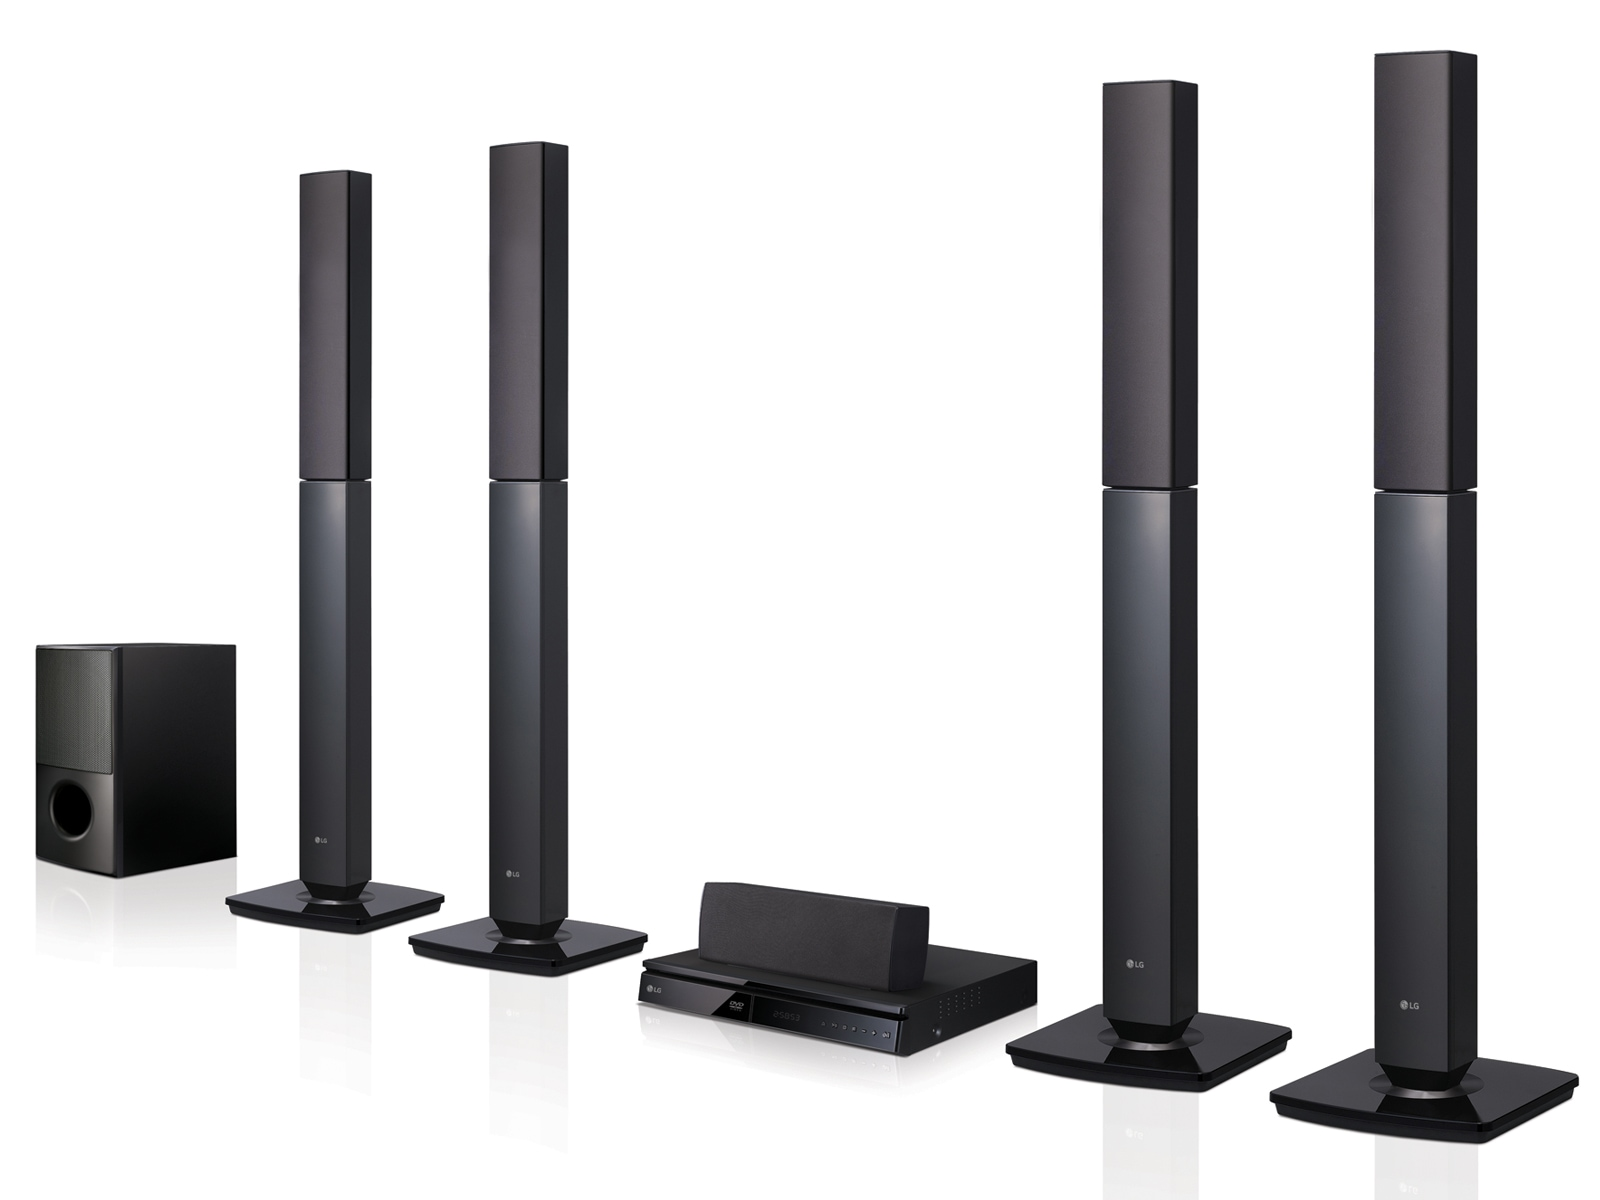 Lg Lhd655 51 Ch Dvd Home Theatre System L Electronics Africa Er Advance R1